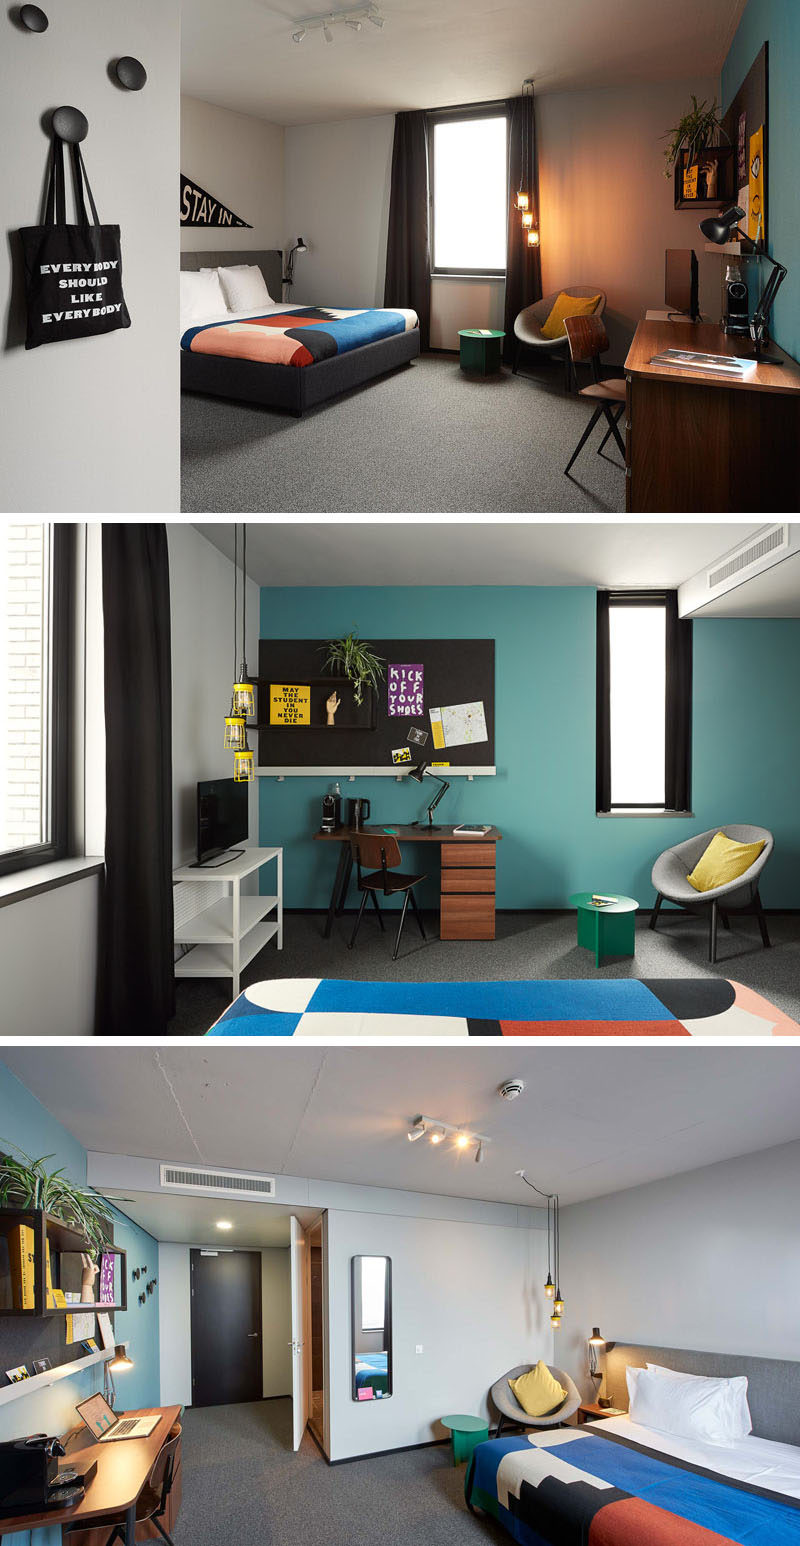 Hotel Room Blueprint: 20 Pictures Of The New Student Hotel In Eindhoven, The